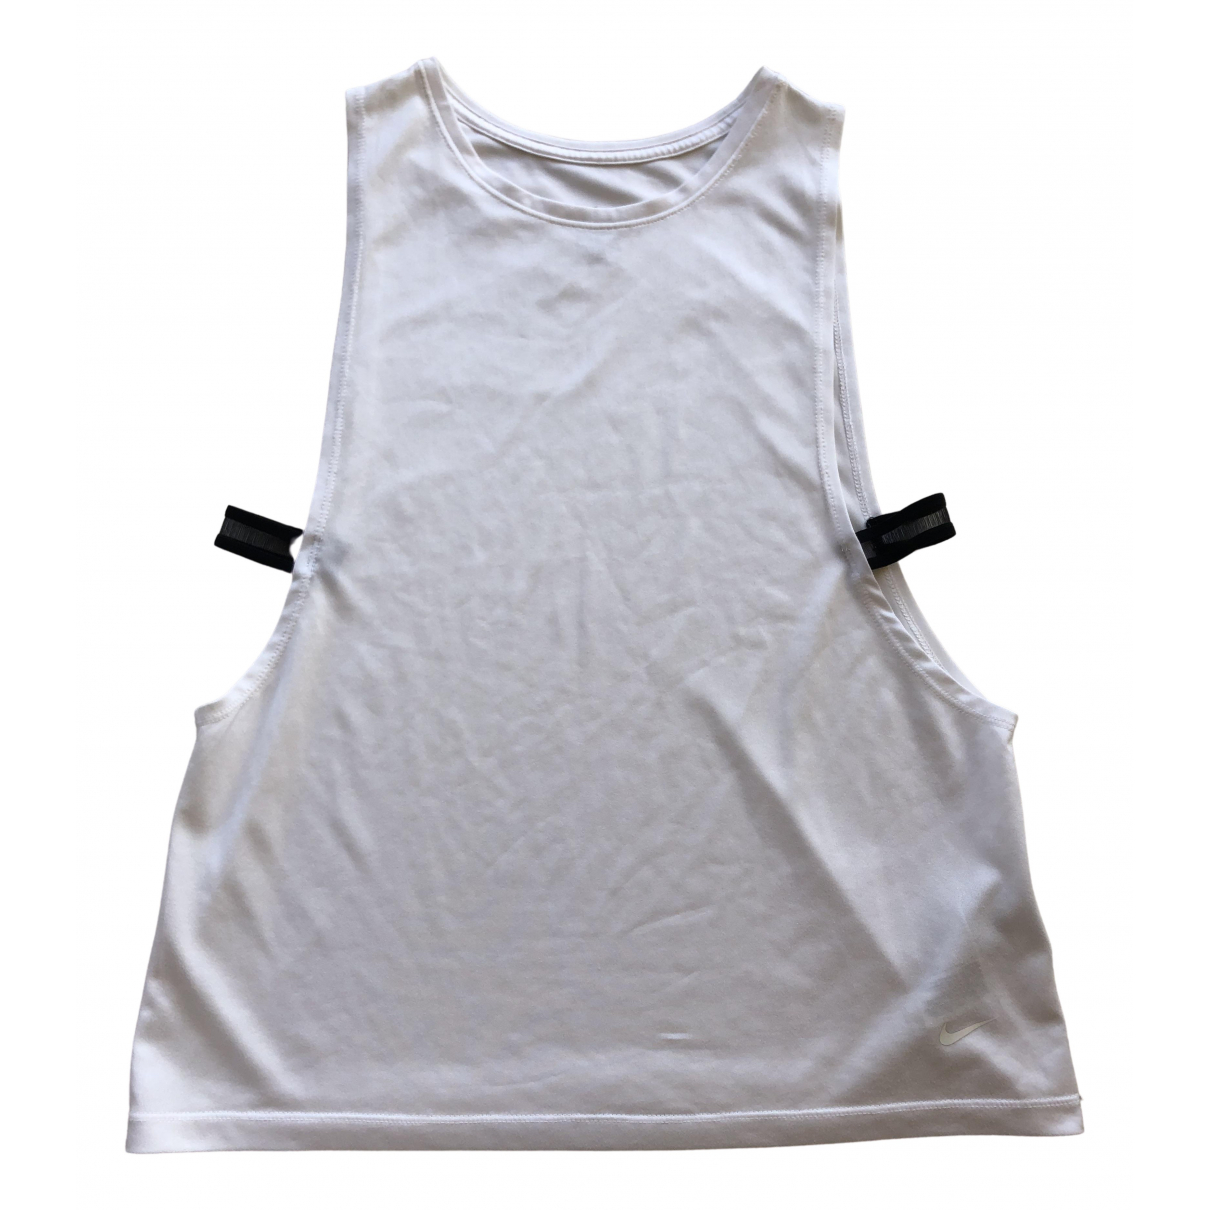 Nike \N Top in  Weiss Polyester